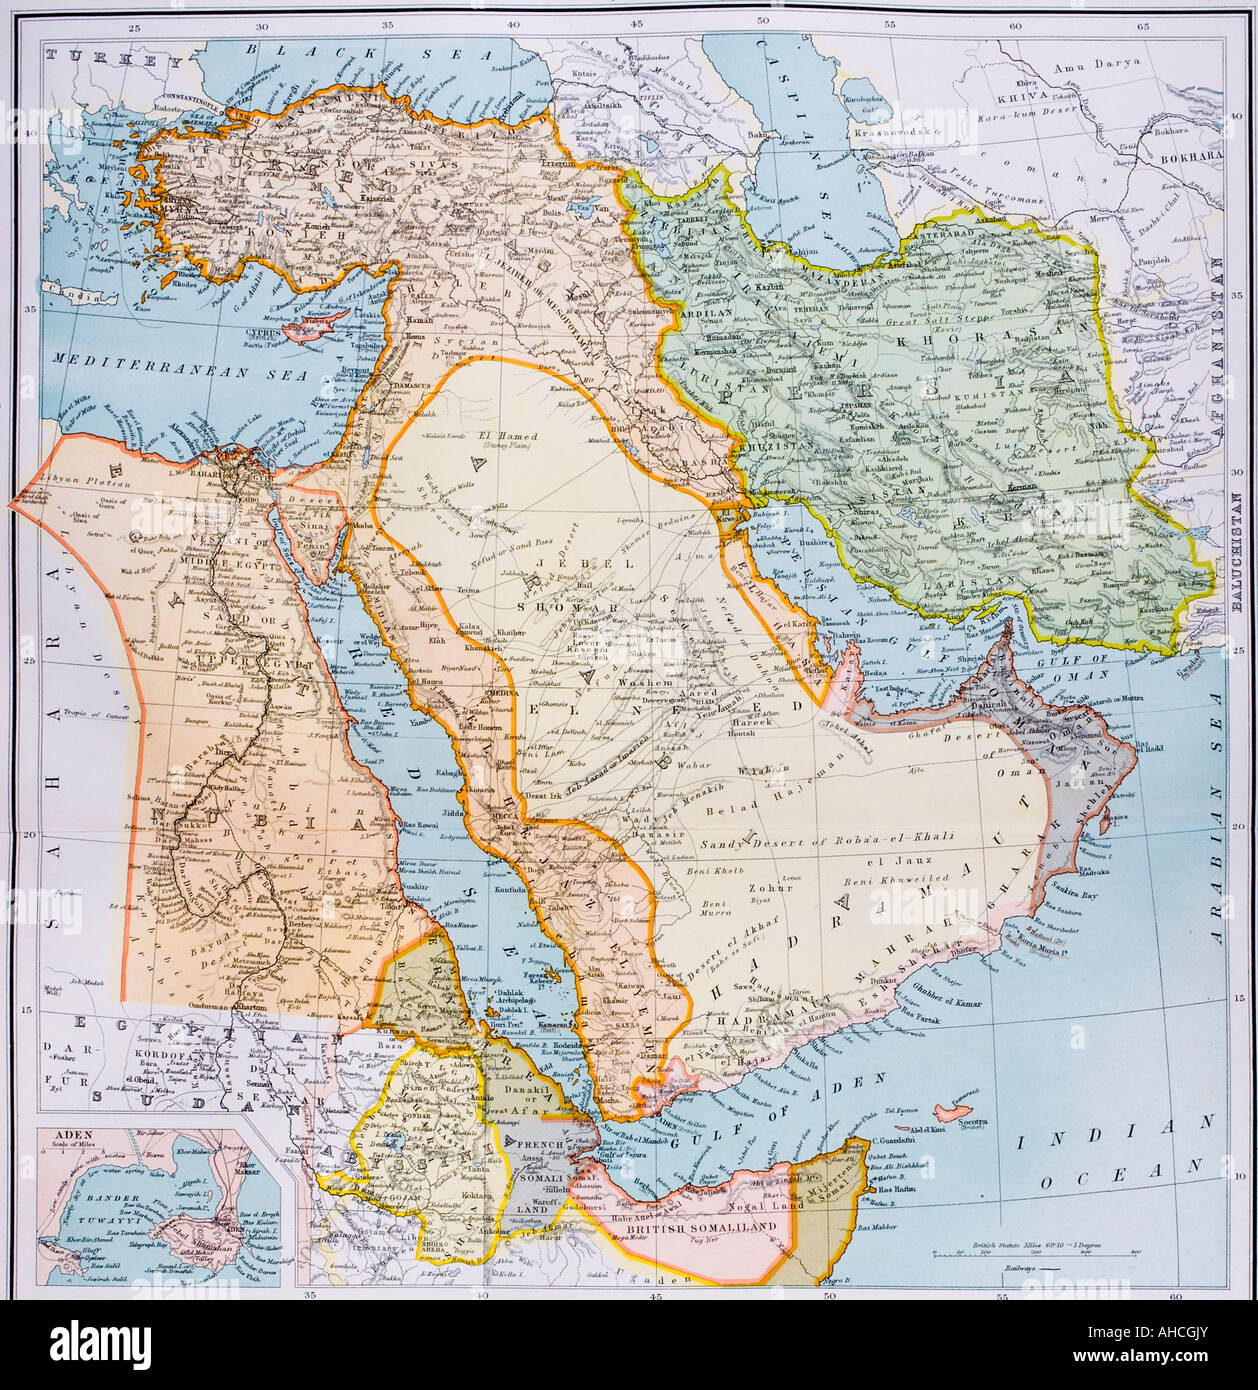 Partial map of Middle East in 1890s